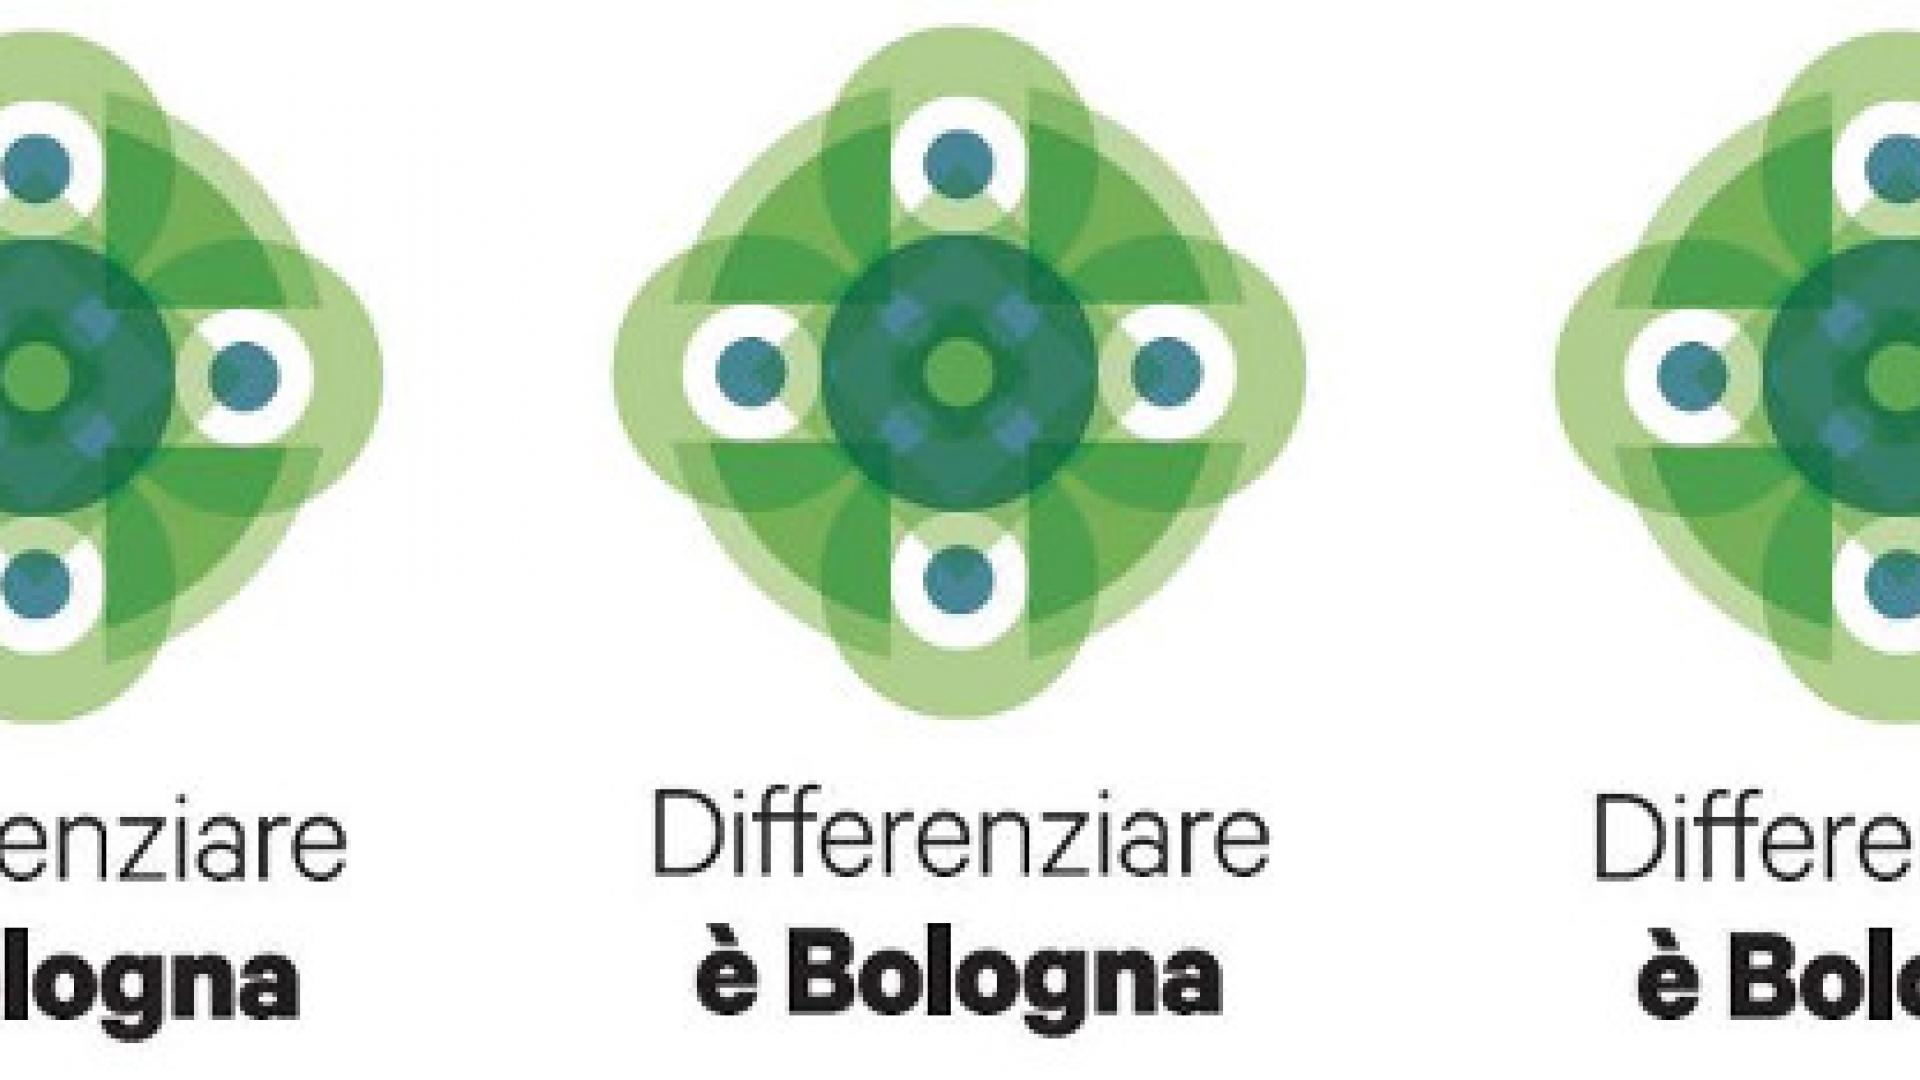 city brand Differenziare è Bologna